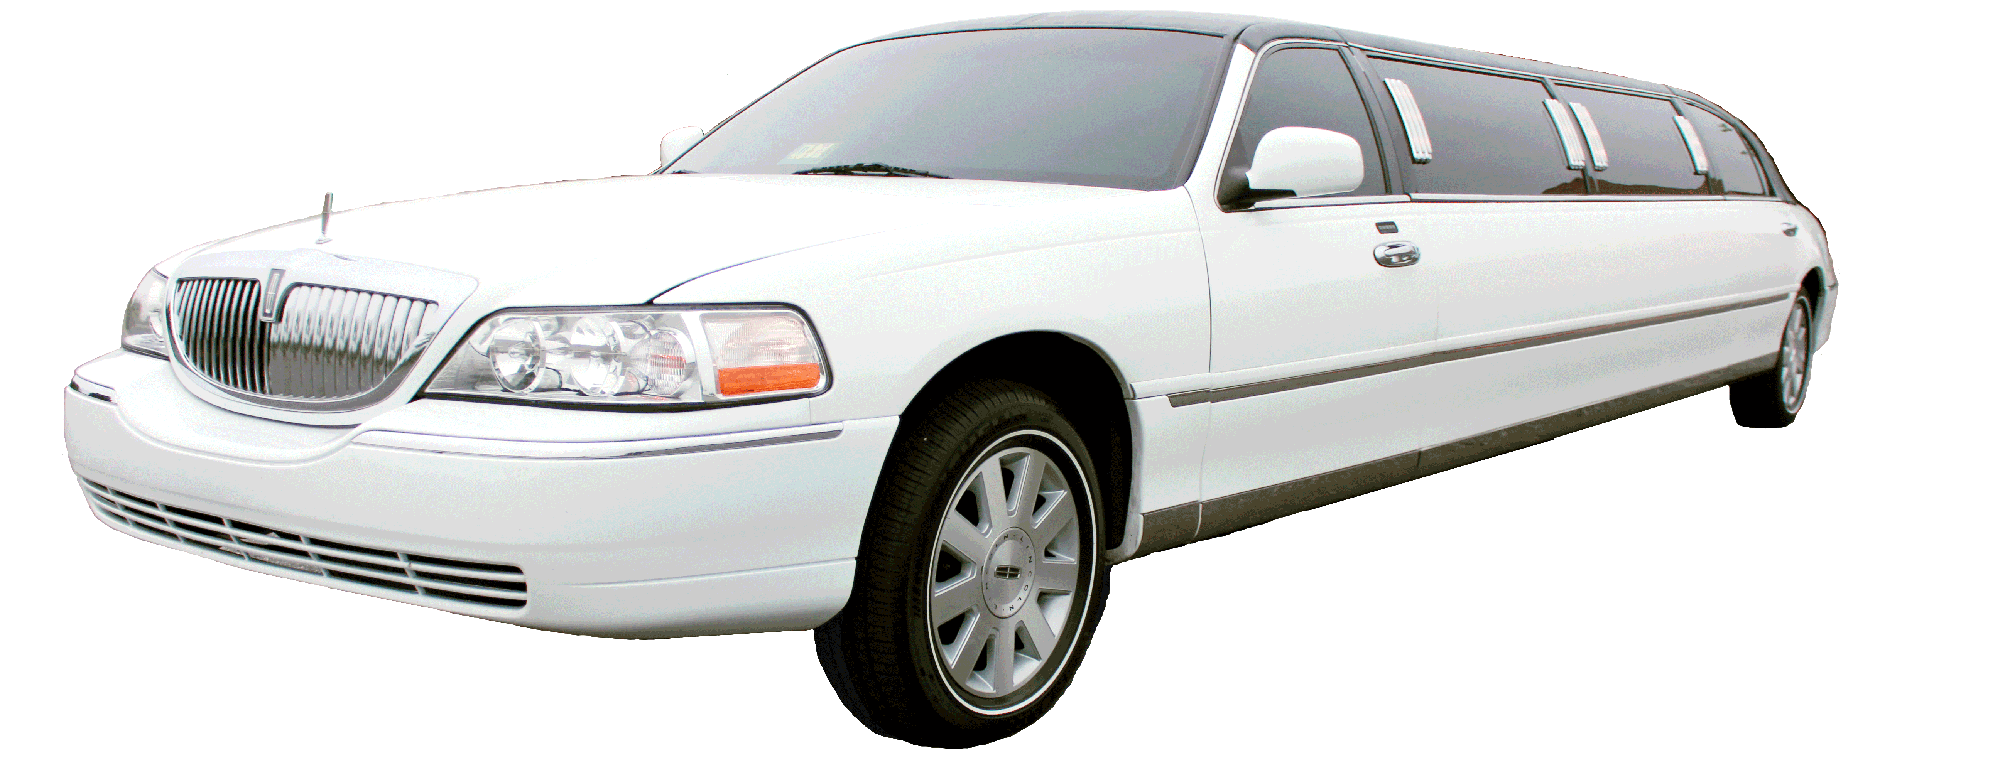 Image Of A White Lincoln Town Car Stretch Limo With A Black Top